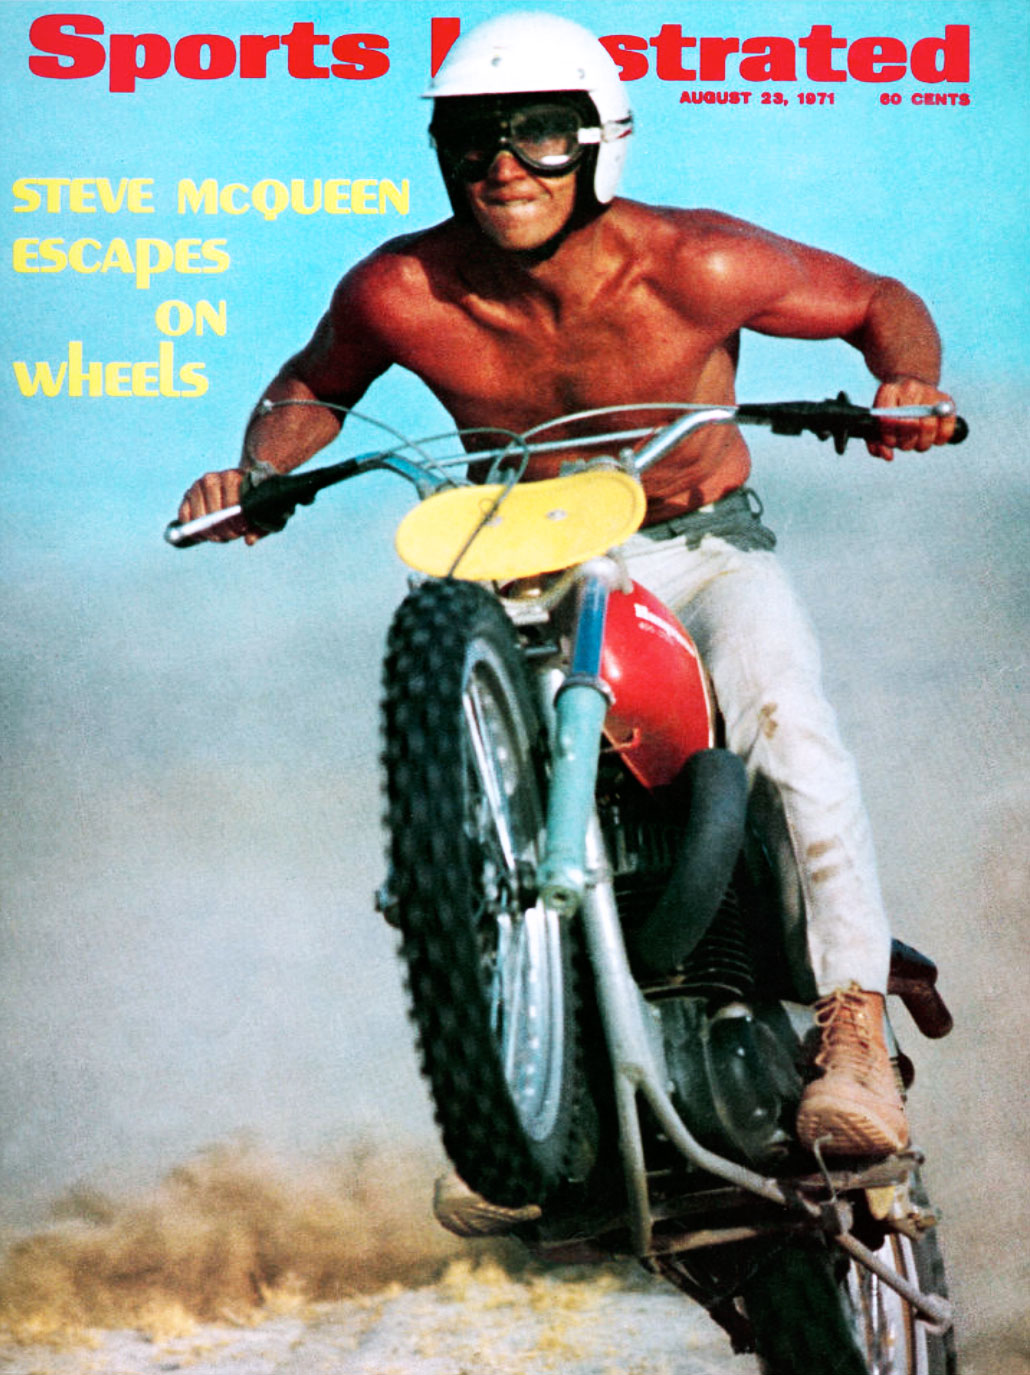 Steve-McQueen-Rolex-Sports-Illustrated-Motorcycle